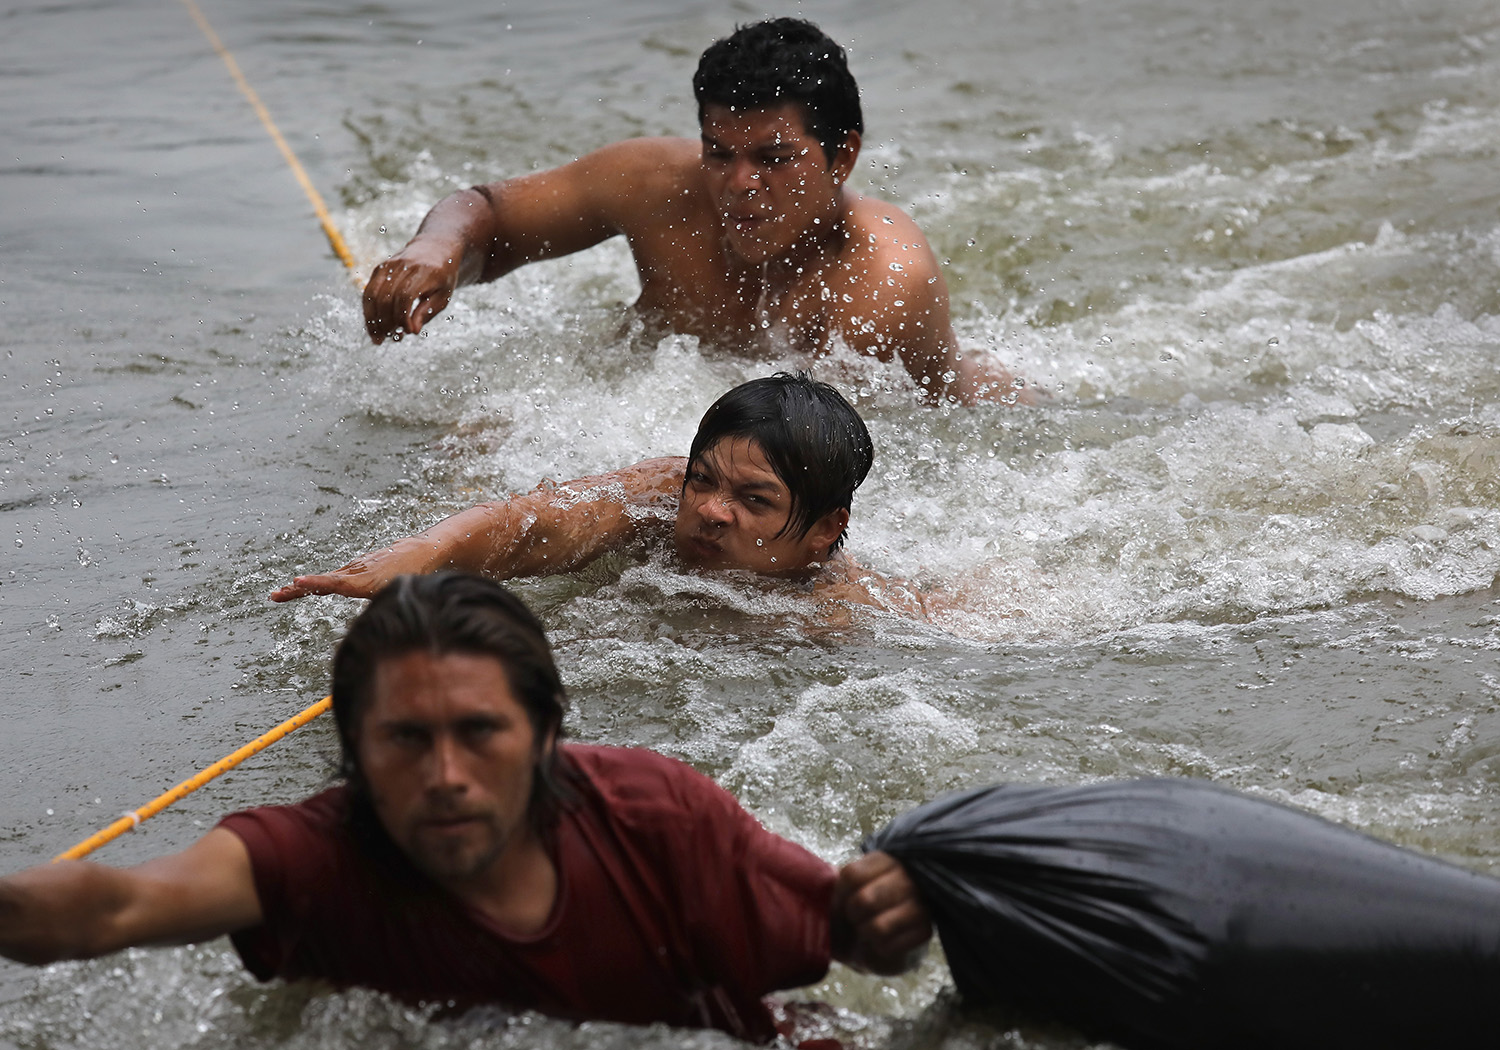 Immigrants wade across the Suchiate River while crossing the border from Guatemala into Mexico as part of the immigrant caravan on October 20, 2018 in Ciudad Hidalgo, Mexico. The caravan of thousands of Central Americans, mostly from Honduras, hopes to eventually reach the United States. U.S. President Donald Trump has threatened to cancel the recent trade deal with Mexico and withhold aid to Central American countries if the caravan isn't stopped before reaching the U.S. (Photo by John Moore/Getty Images)